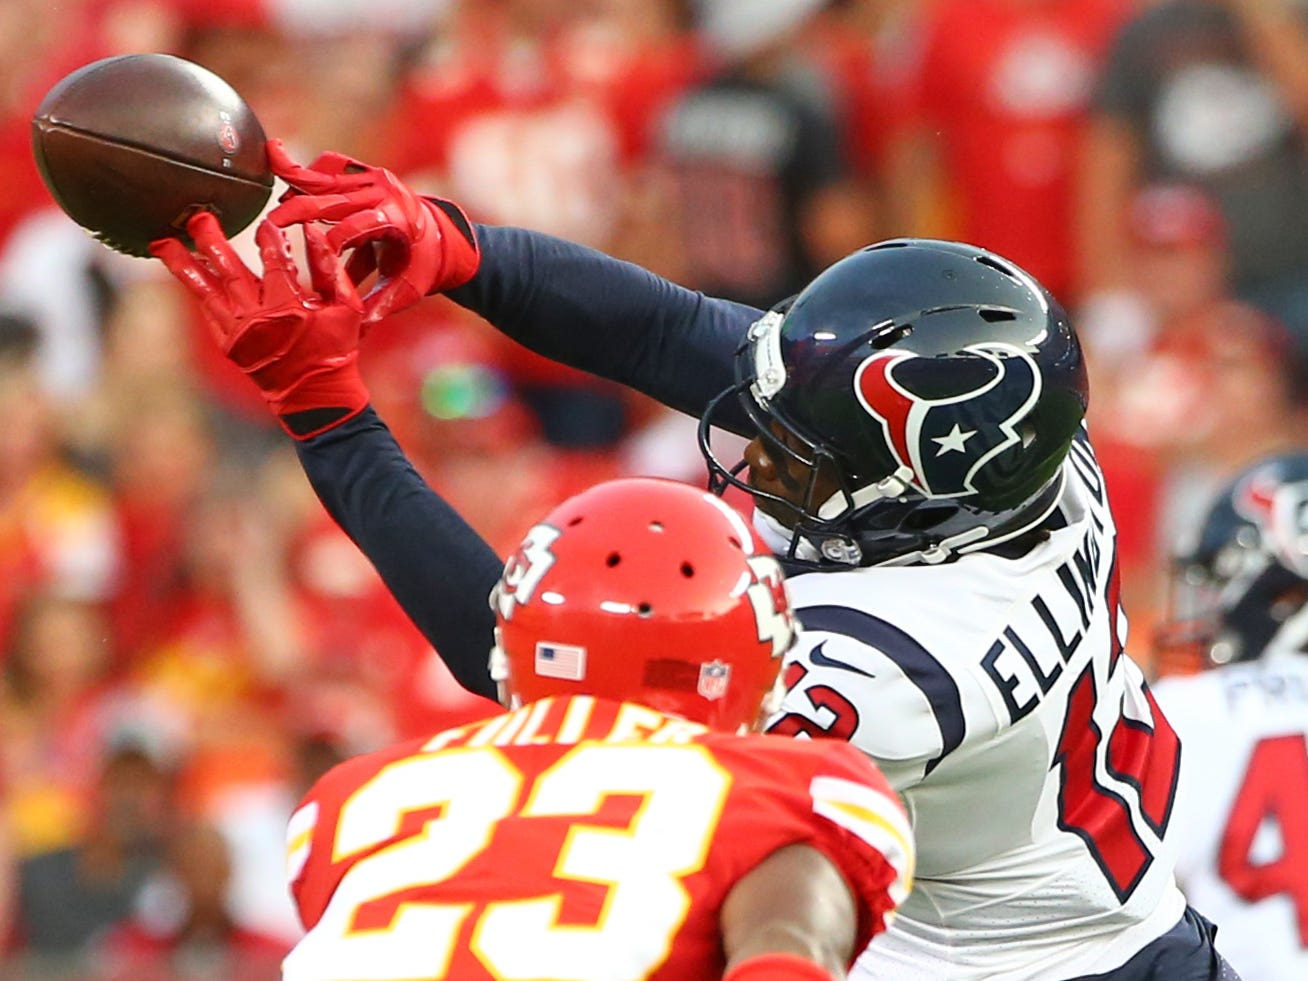 Houston Texans wide receiver Bruce Ellington (12) is unable to make the catch as Kansas City Chiefs cornerback Kendall Fuller (23) defends in the first half at Arrowhead Stadium.